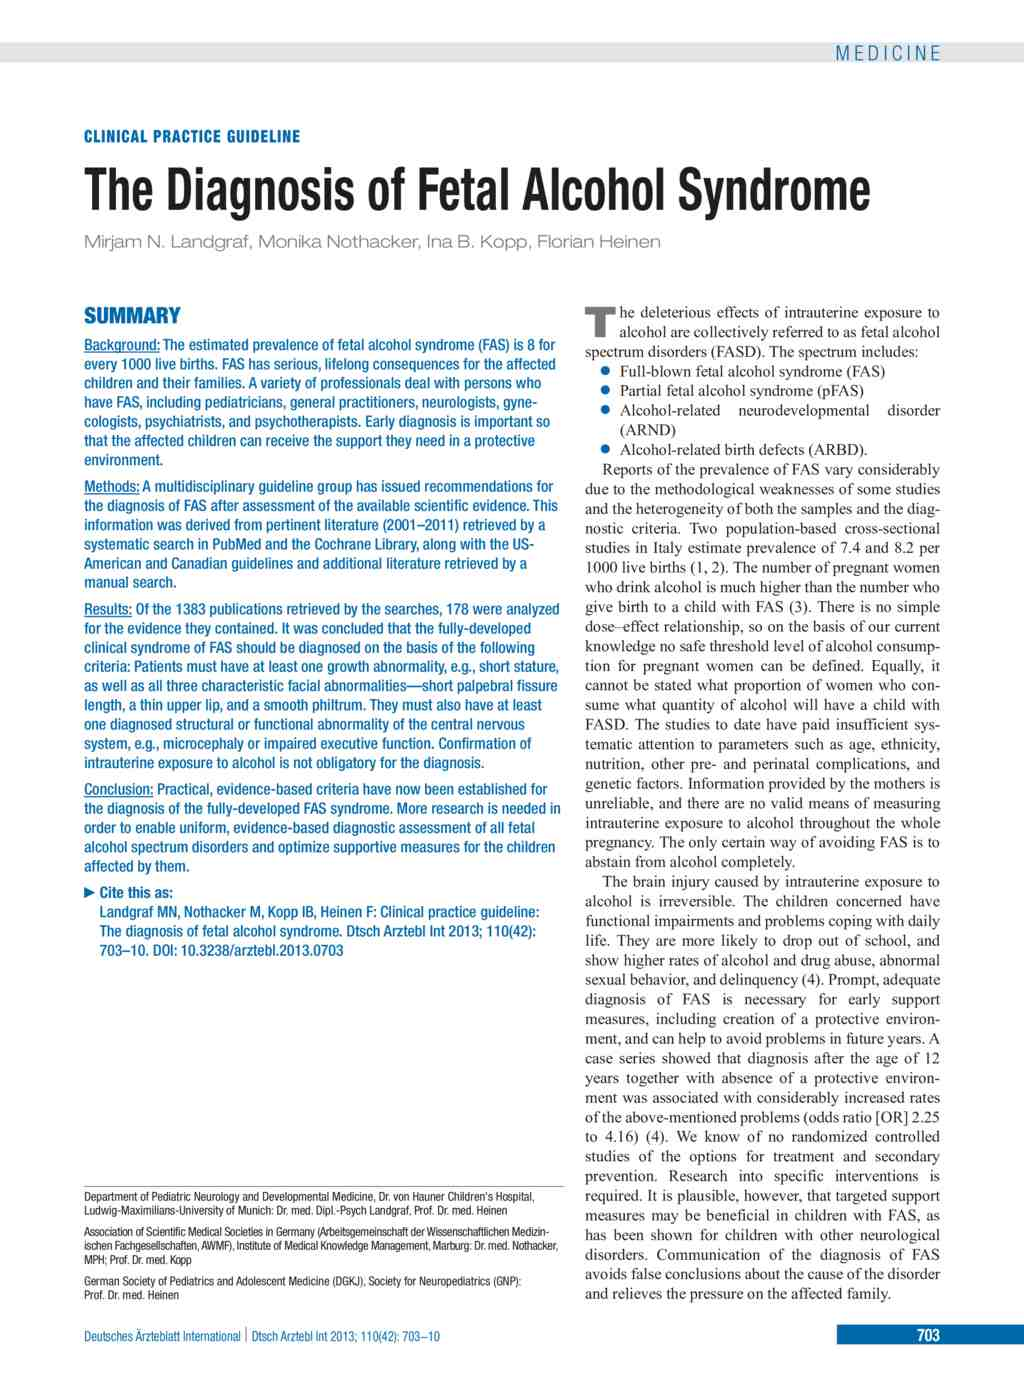 a study on fetal alcohol syndrome Researchers at the california teratogen information service (ctis) pregnancy  health information line, a state-wide non-profit organization.